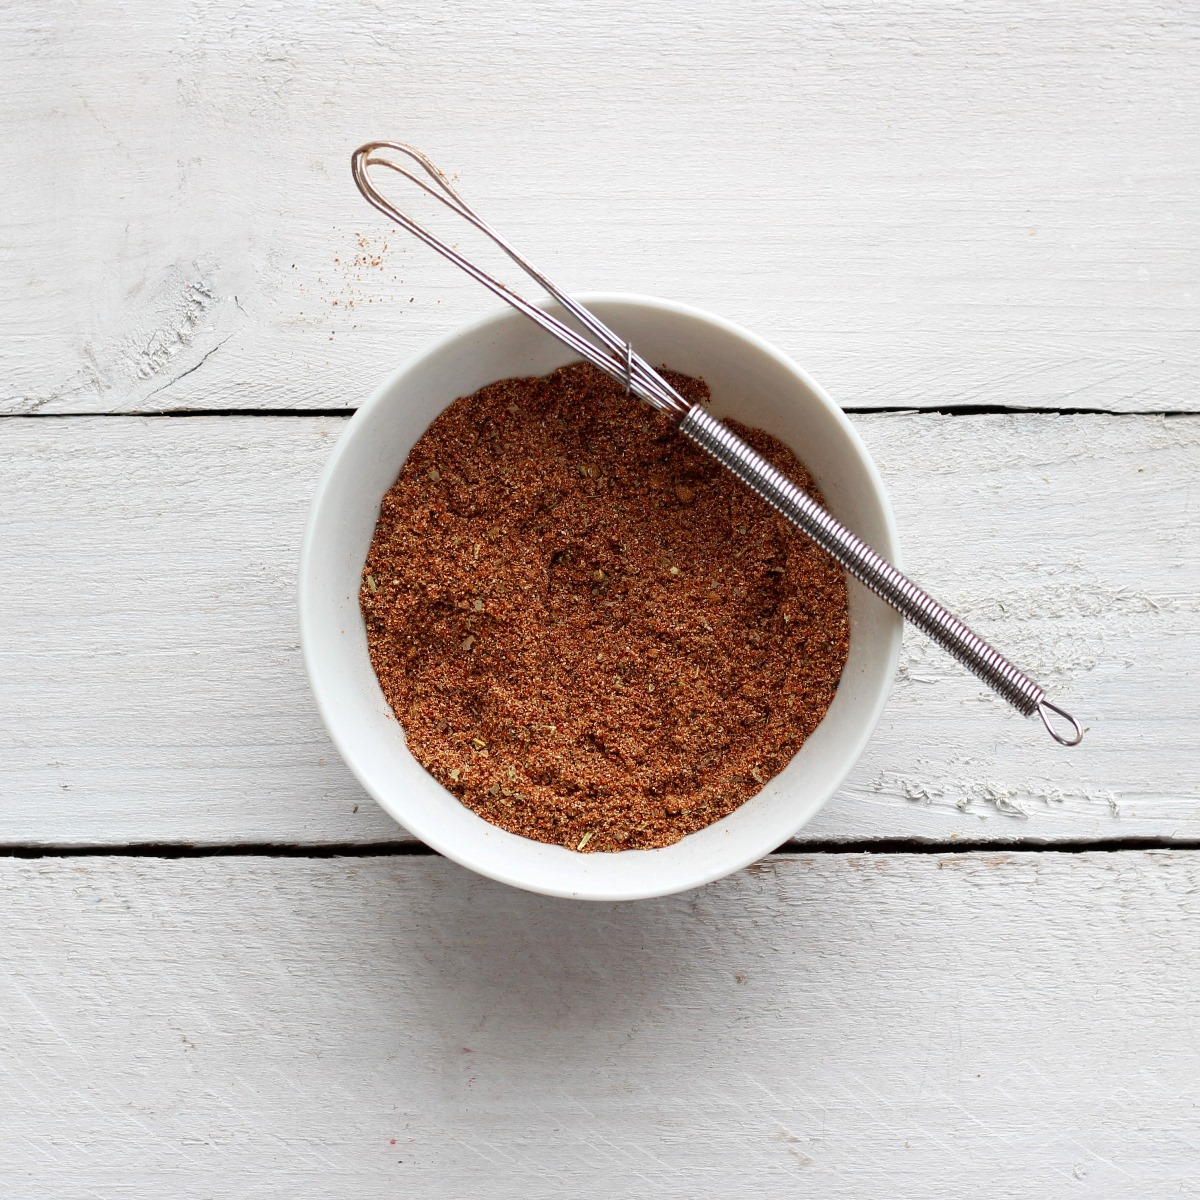 Spice mix in white bowl on white backgrond